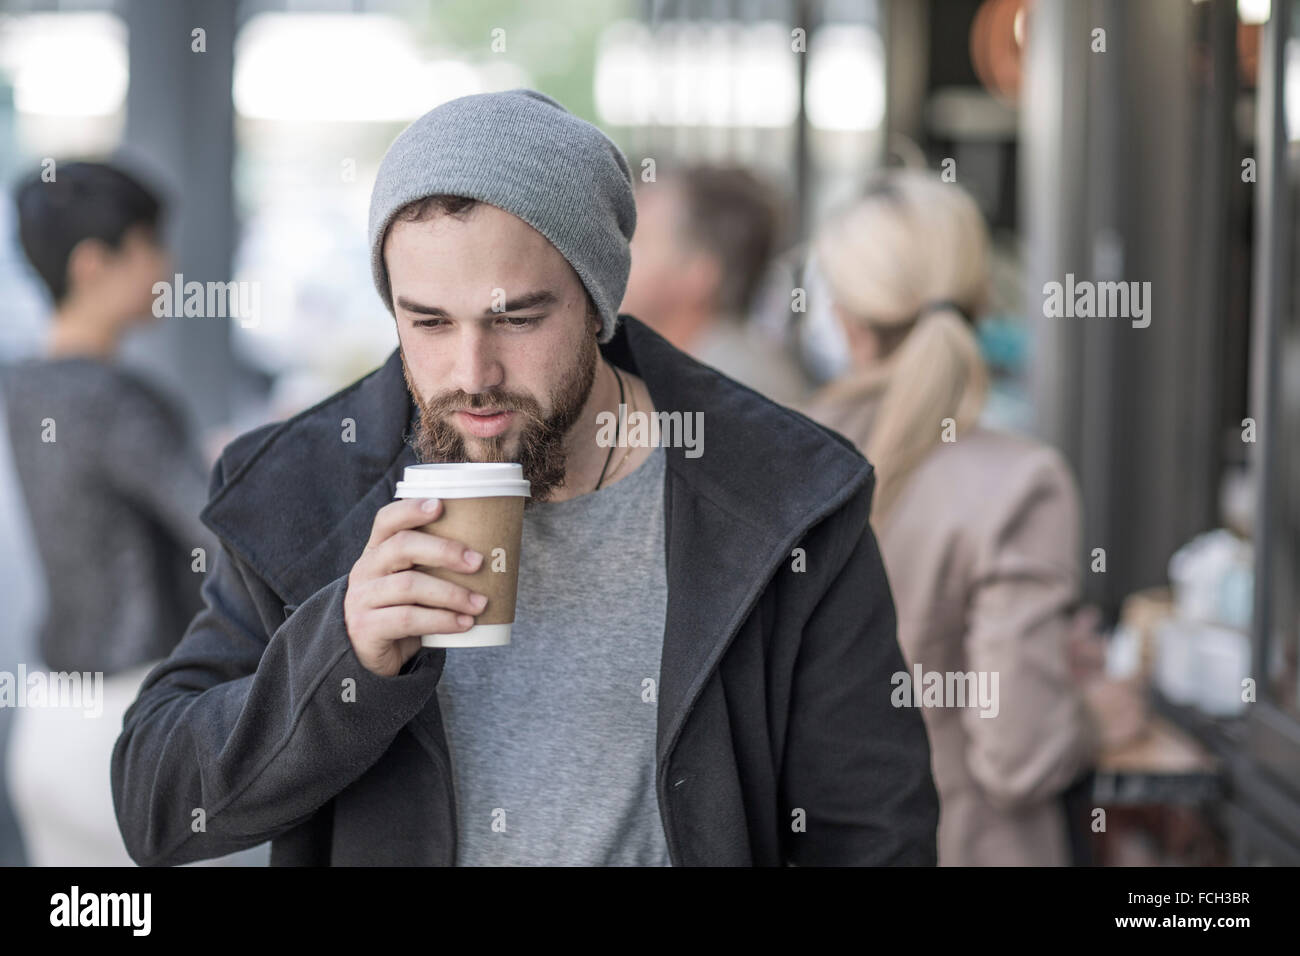 Young man drinking takeaway coffee in the city - Stock Image